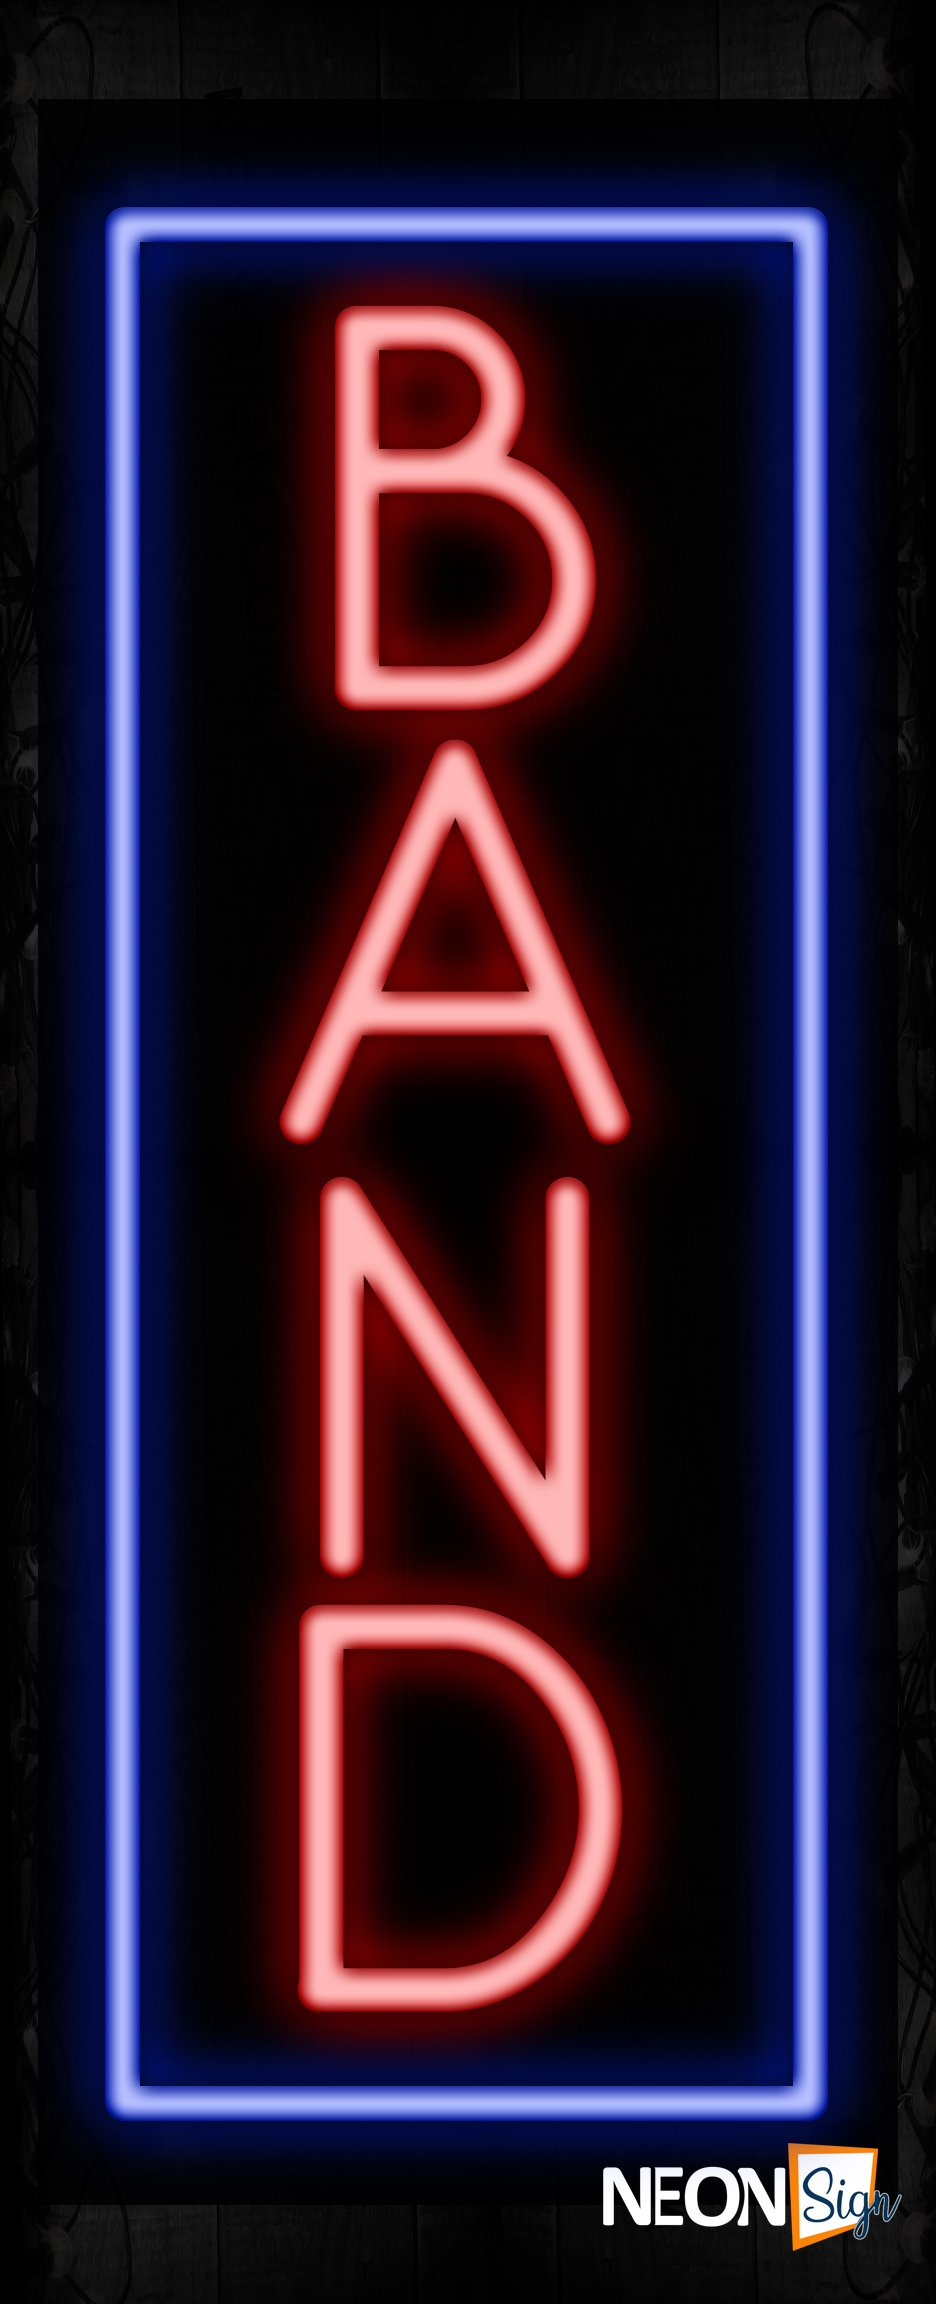 Image of 11518 Band in red with blue border (Vertical) Neon Sign_32 x12 Black Backing